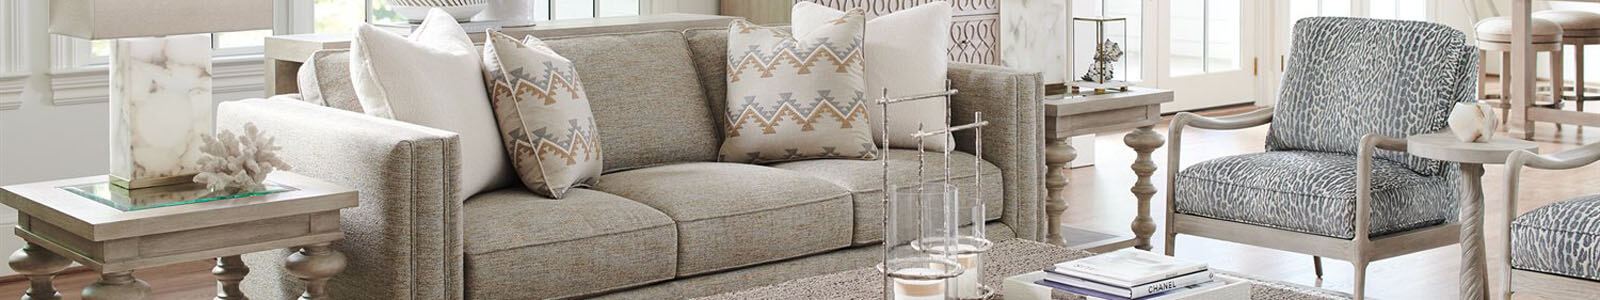 Barclay Butera Furniture For Sale | Buy Barclay Butera Furniture Banner